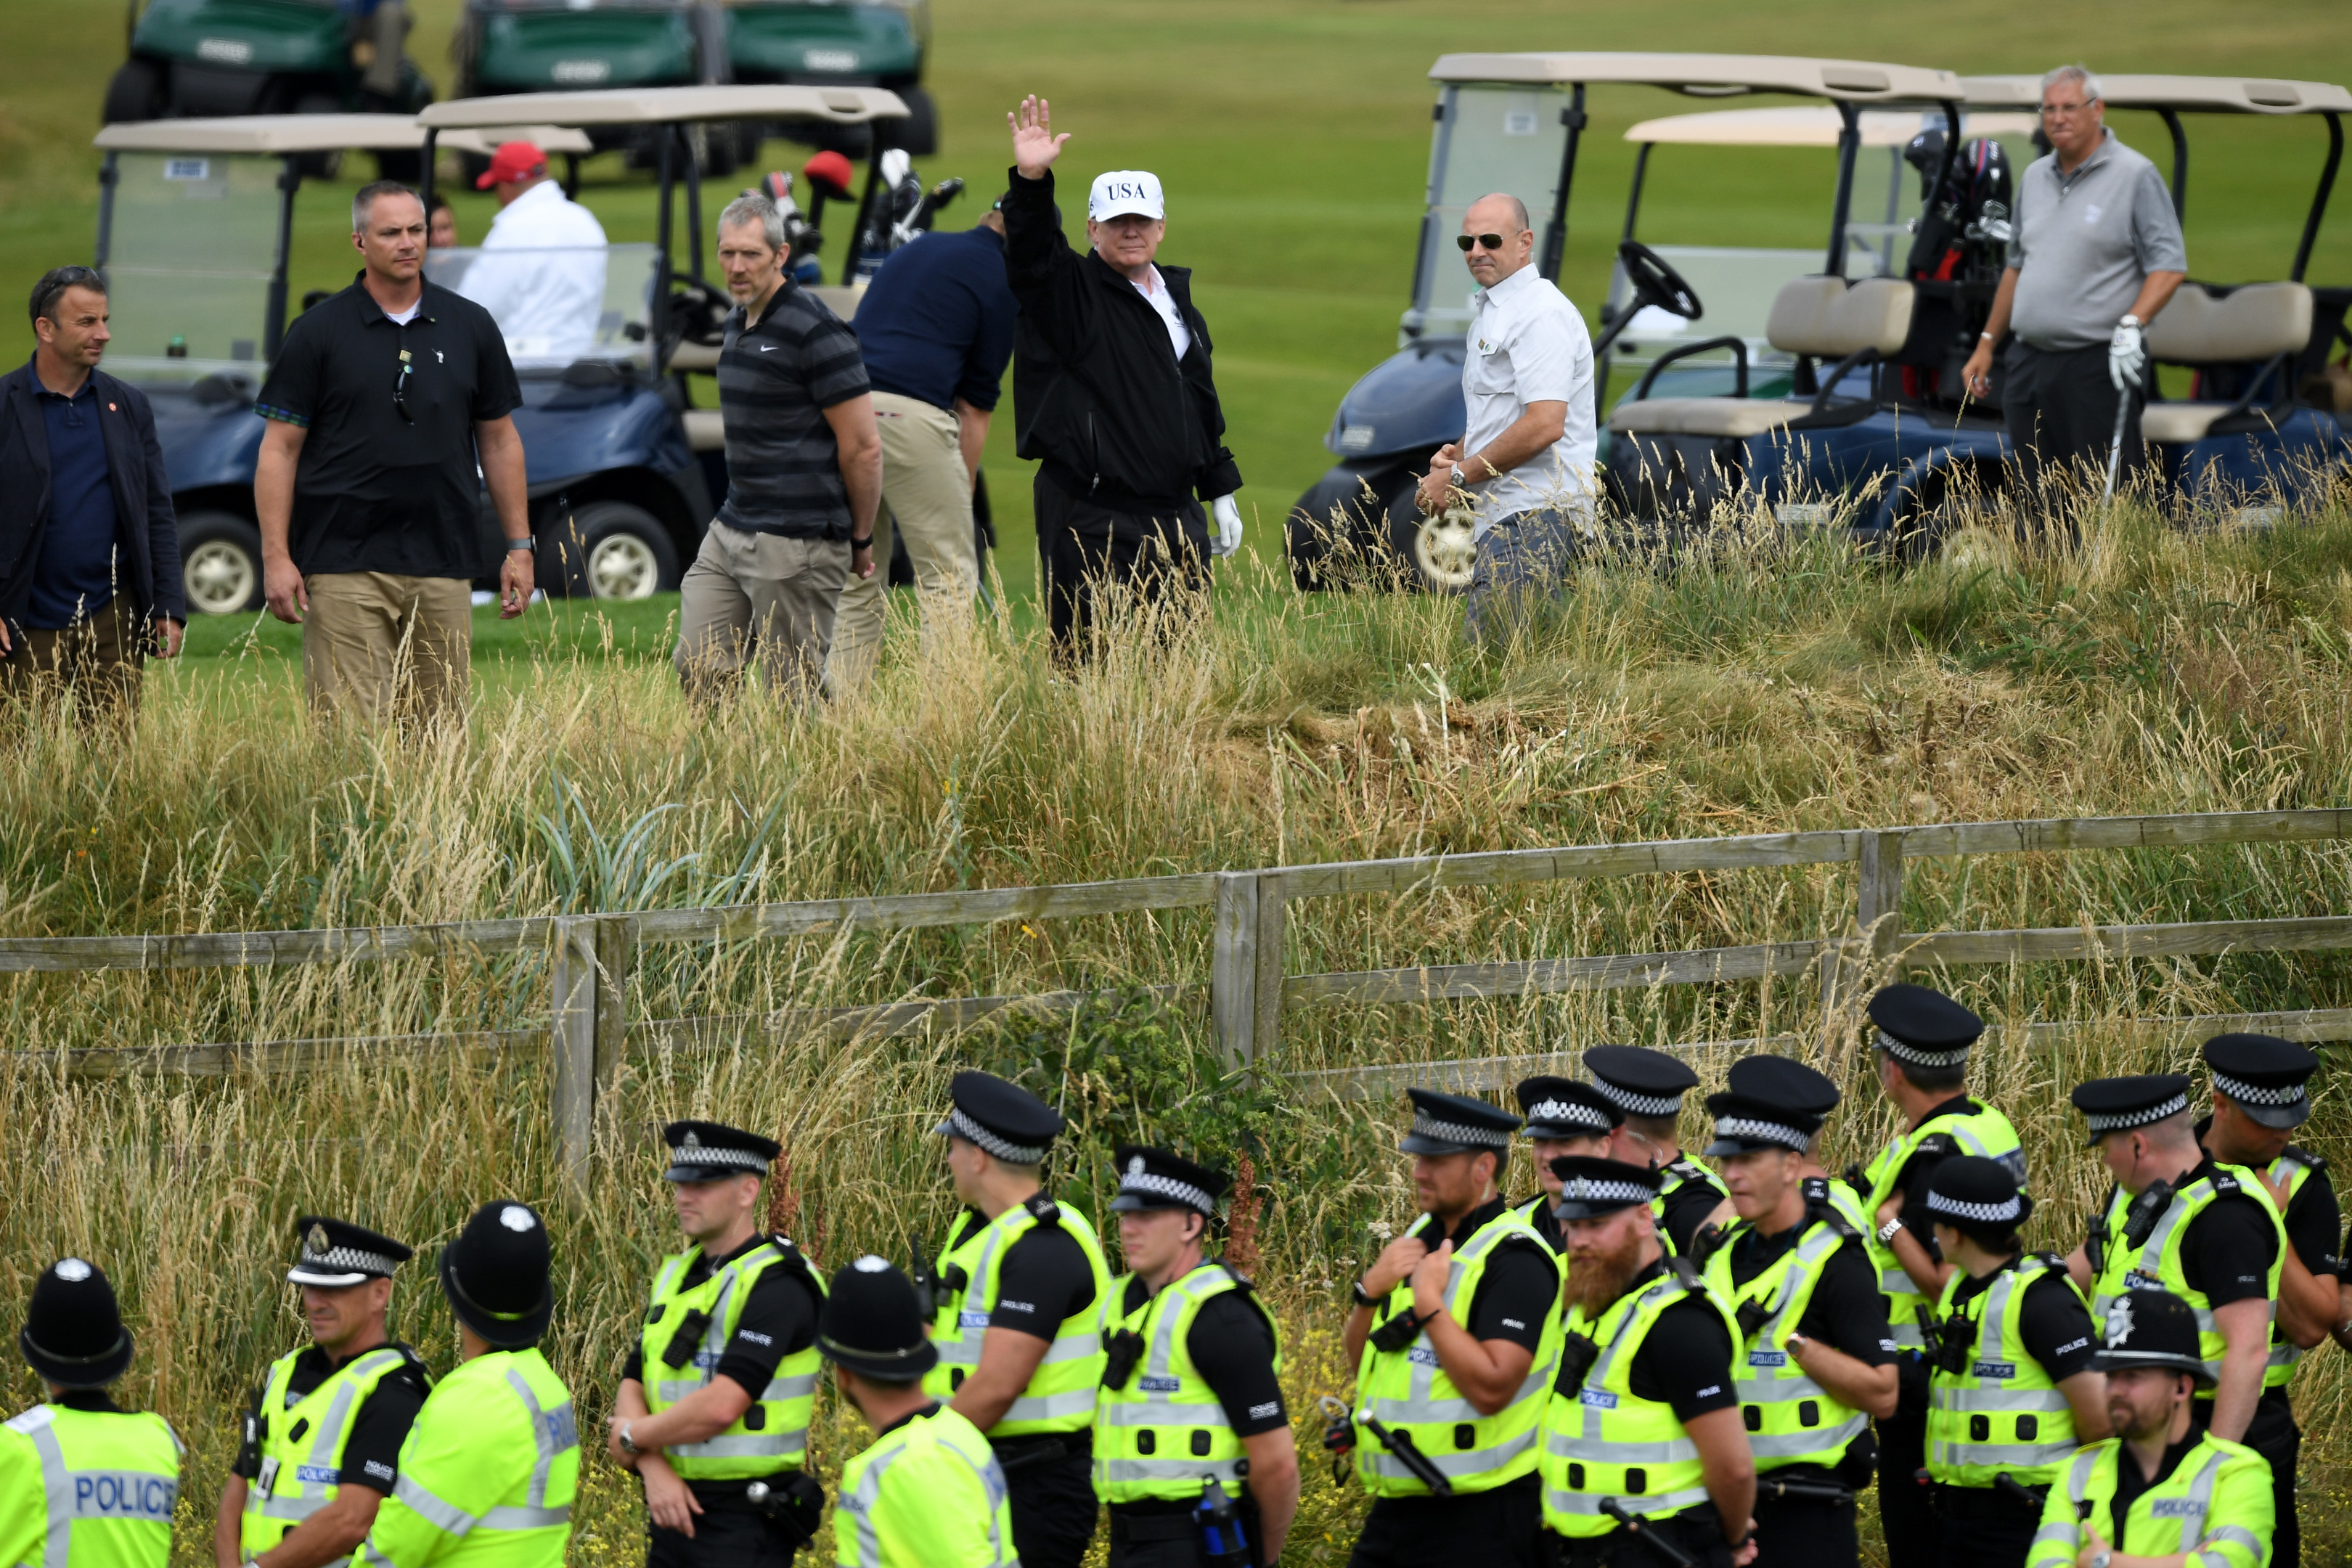 Donald Trump plays golf at Turnberry under tight security (Leon Neal/Getty Images)